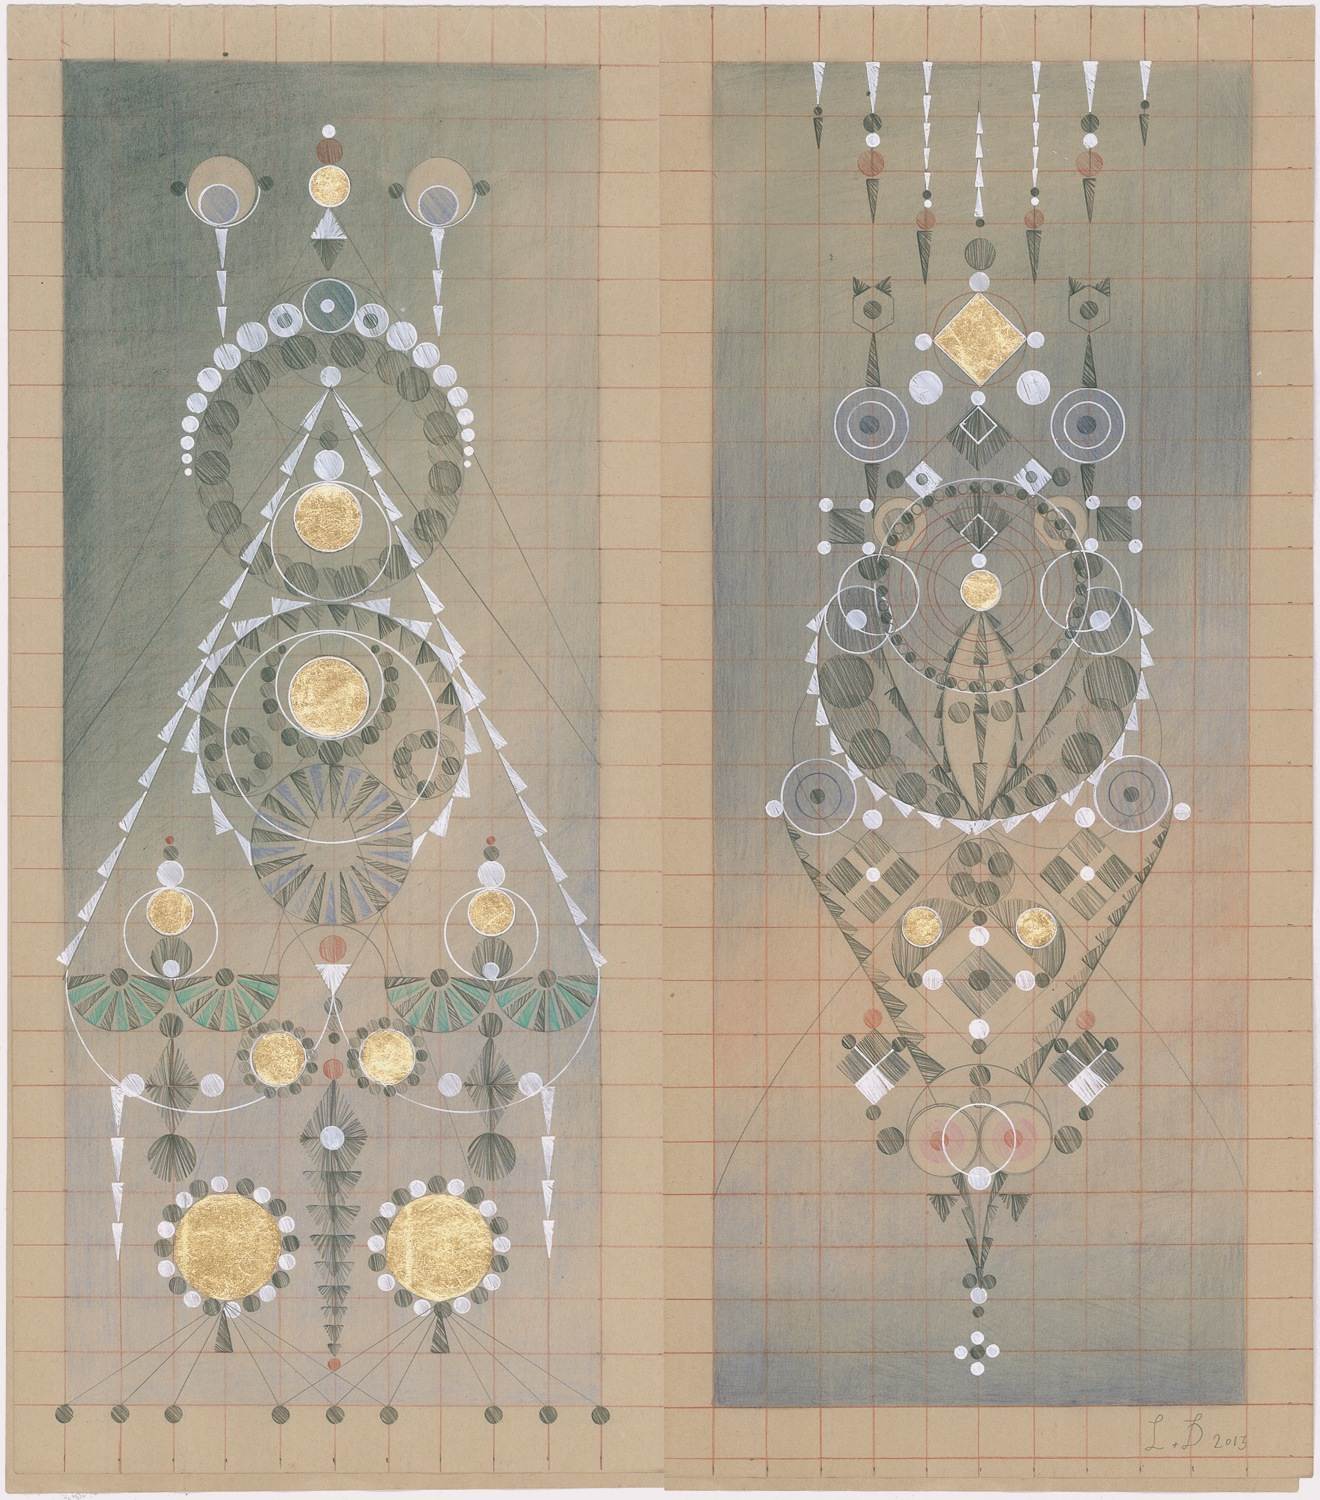 Constellation Symptom No. 19,Colored Pencil,Graphite, Gold Leaf on Antique Ledger Book Pages.13.5 x 12.25 inches